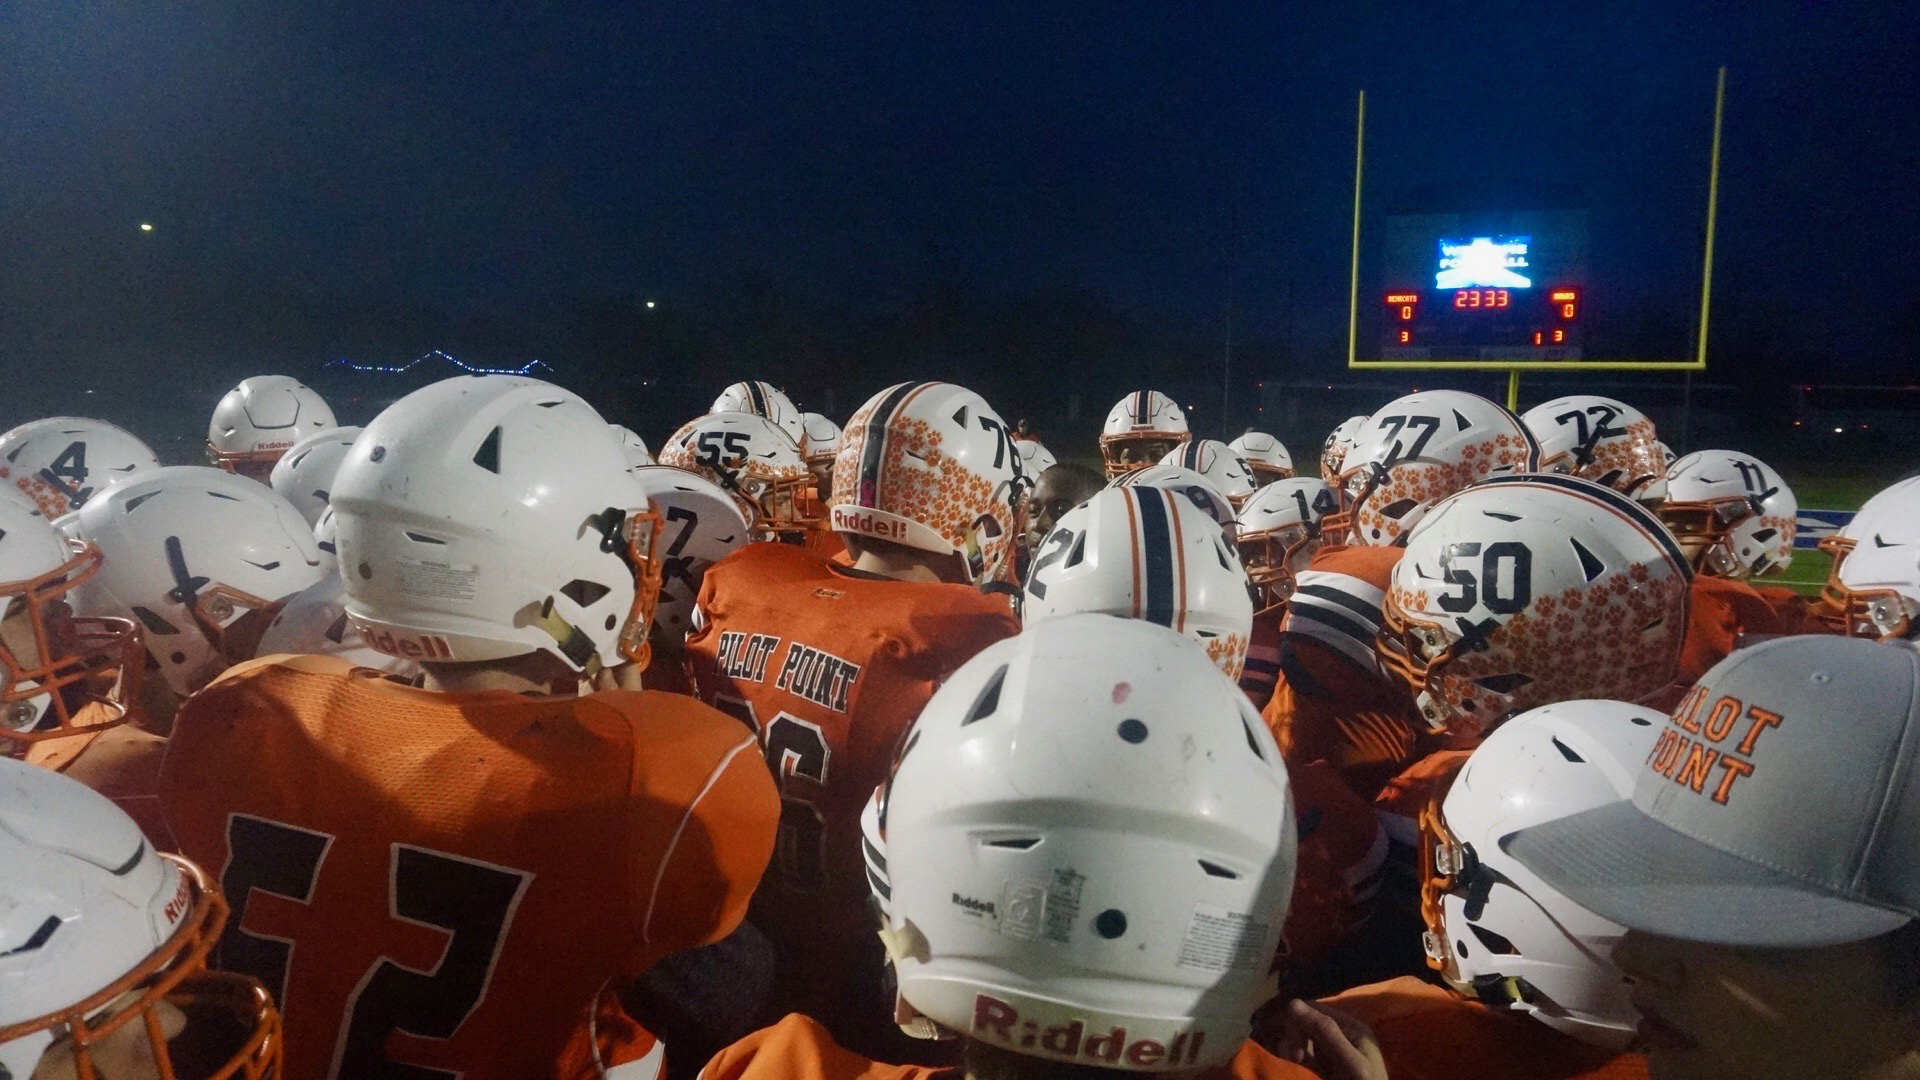 The Pilot Point Bearcats gather before running onto Newton Stadium field in Graham, Texas to start the regional playoff against the Wall Hawks on Nov. 29, 2019. (LIVE! Photo/Joe Z. Hyde)